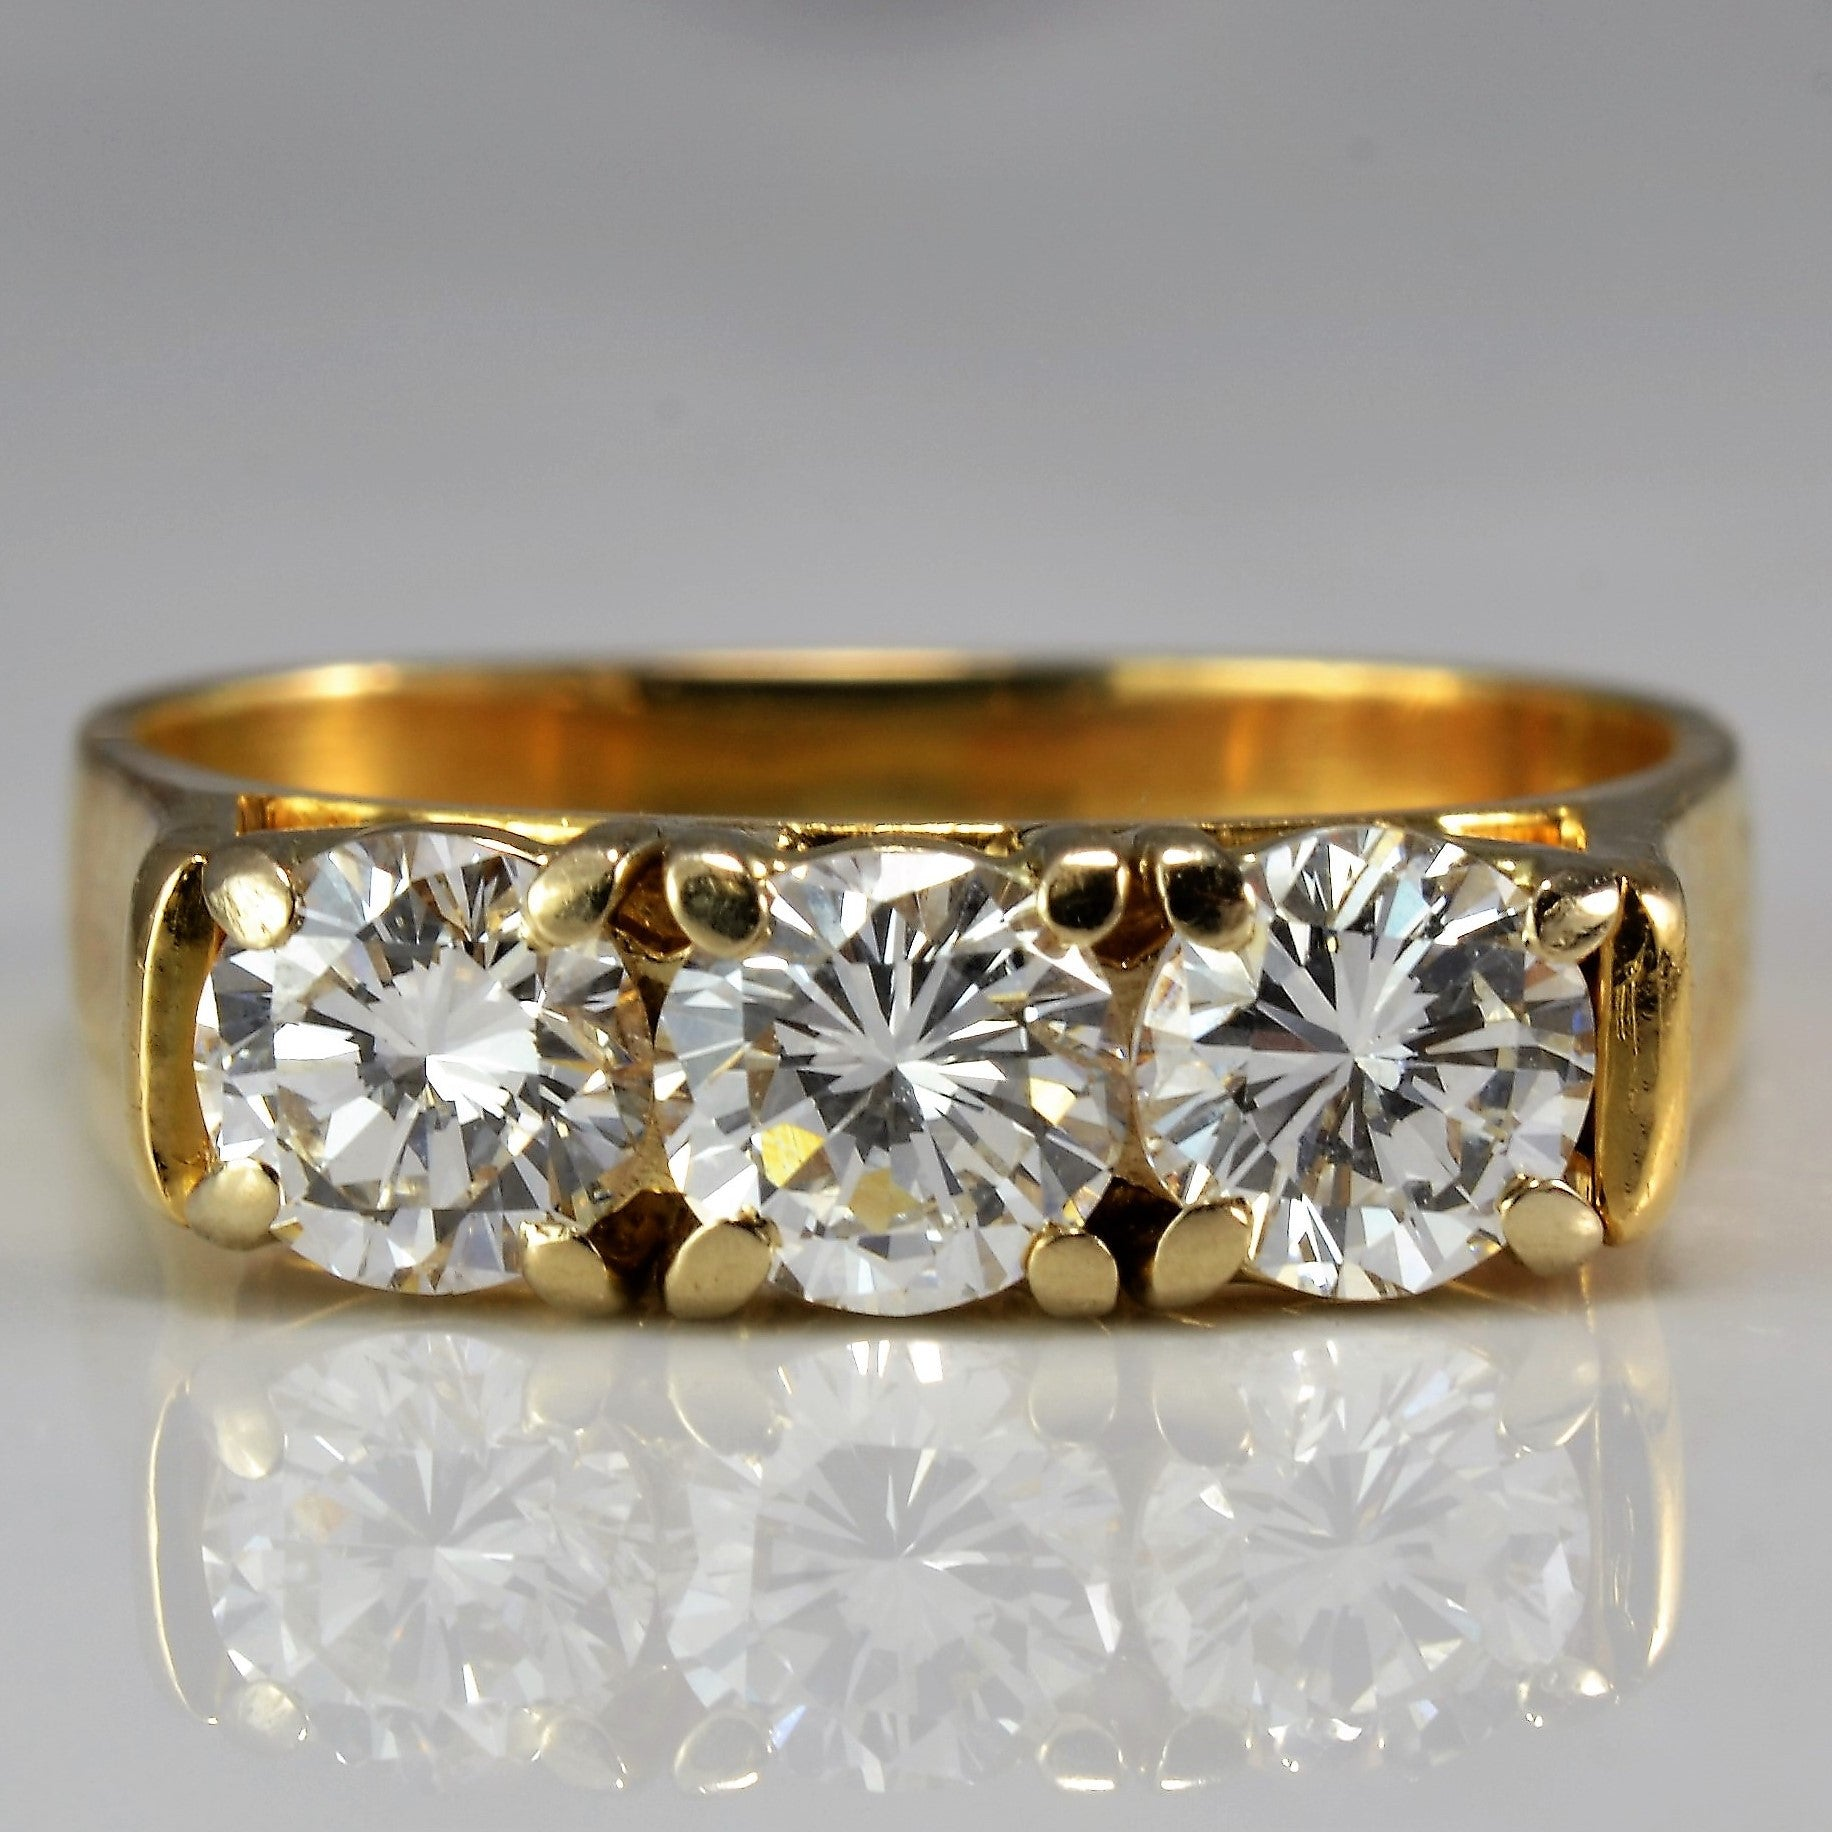 Magnificent Three Stone Diamond Ring | 1.00 ctw, SZ 5 |